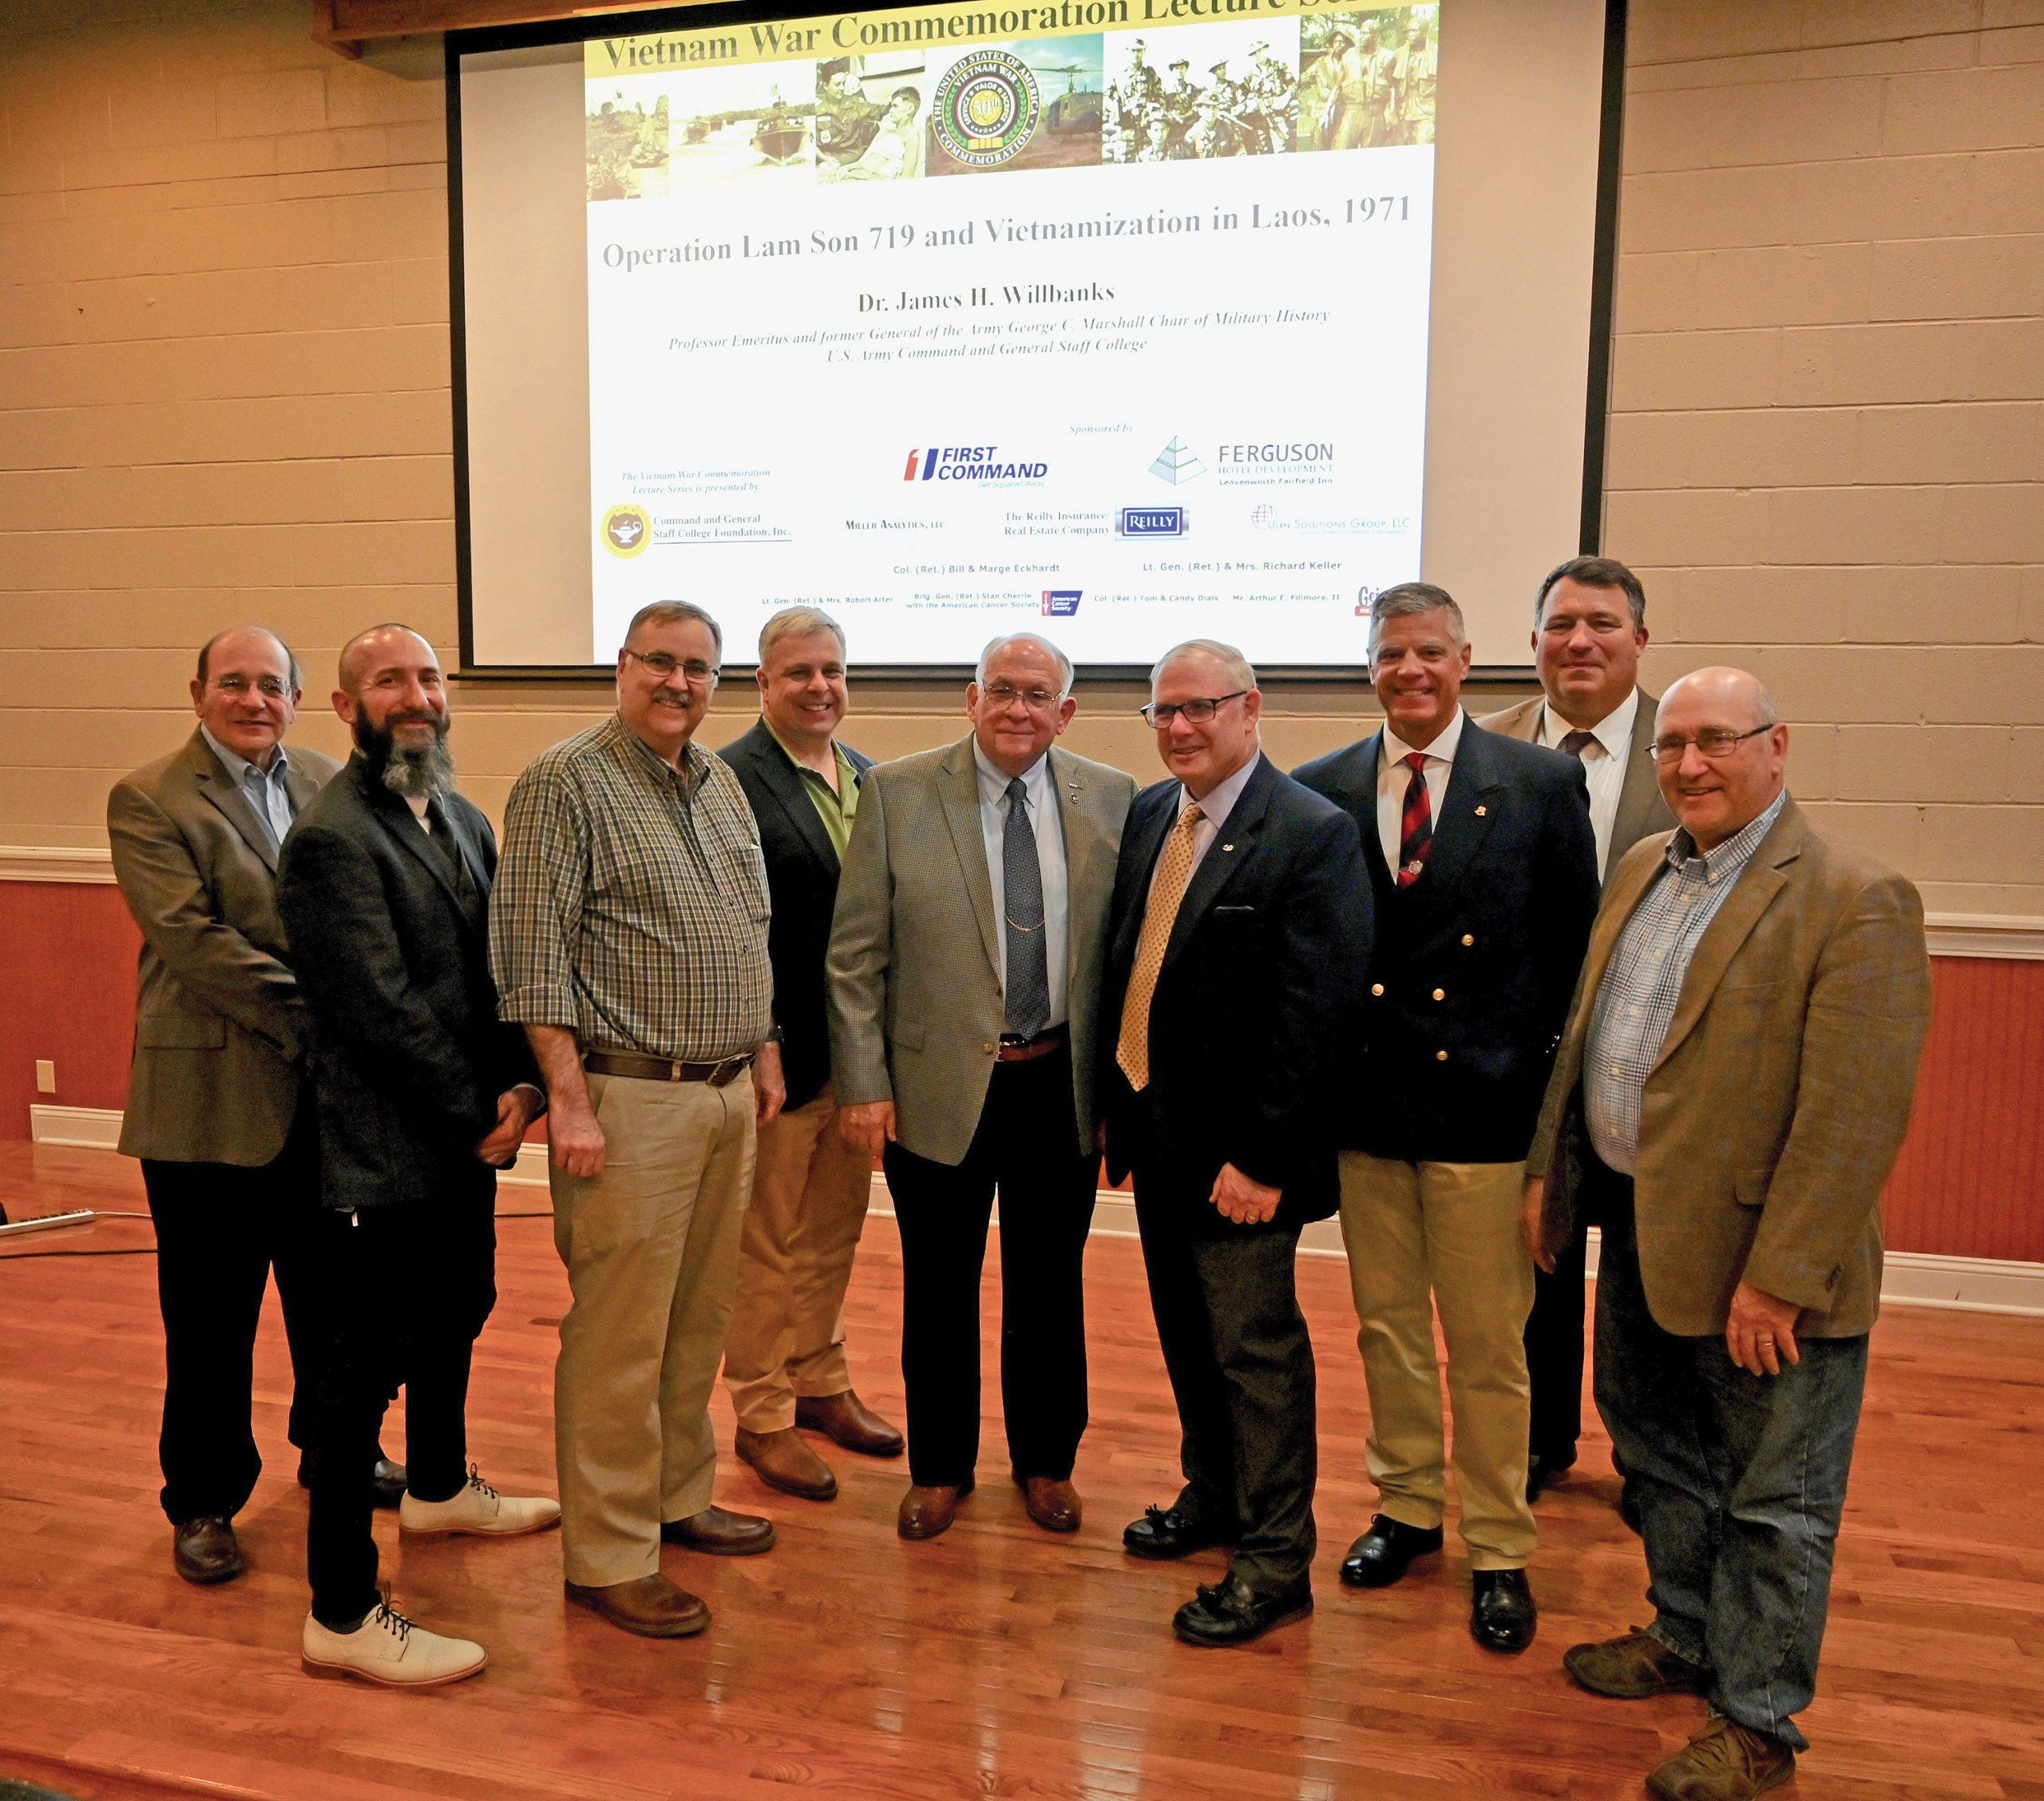 CGSC Professor Emeritus Dr. James H. Willbanks reunites with some of his CGSC faculty colleagues during the CGSC Foundation's Vietnam War Commemoration Lecture Series on May 13, 2021, at June's Northland in downtown Leavenworth, Kansas.